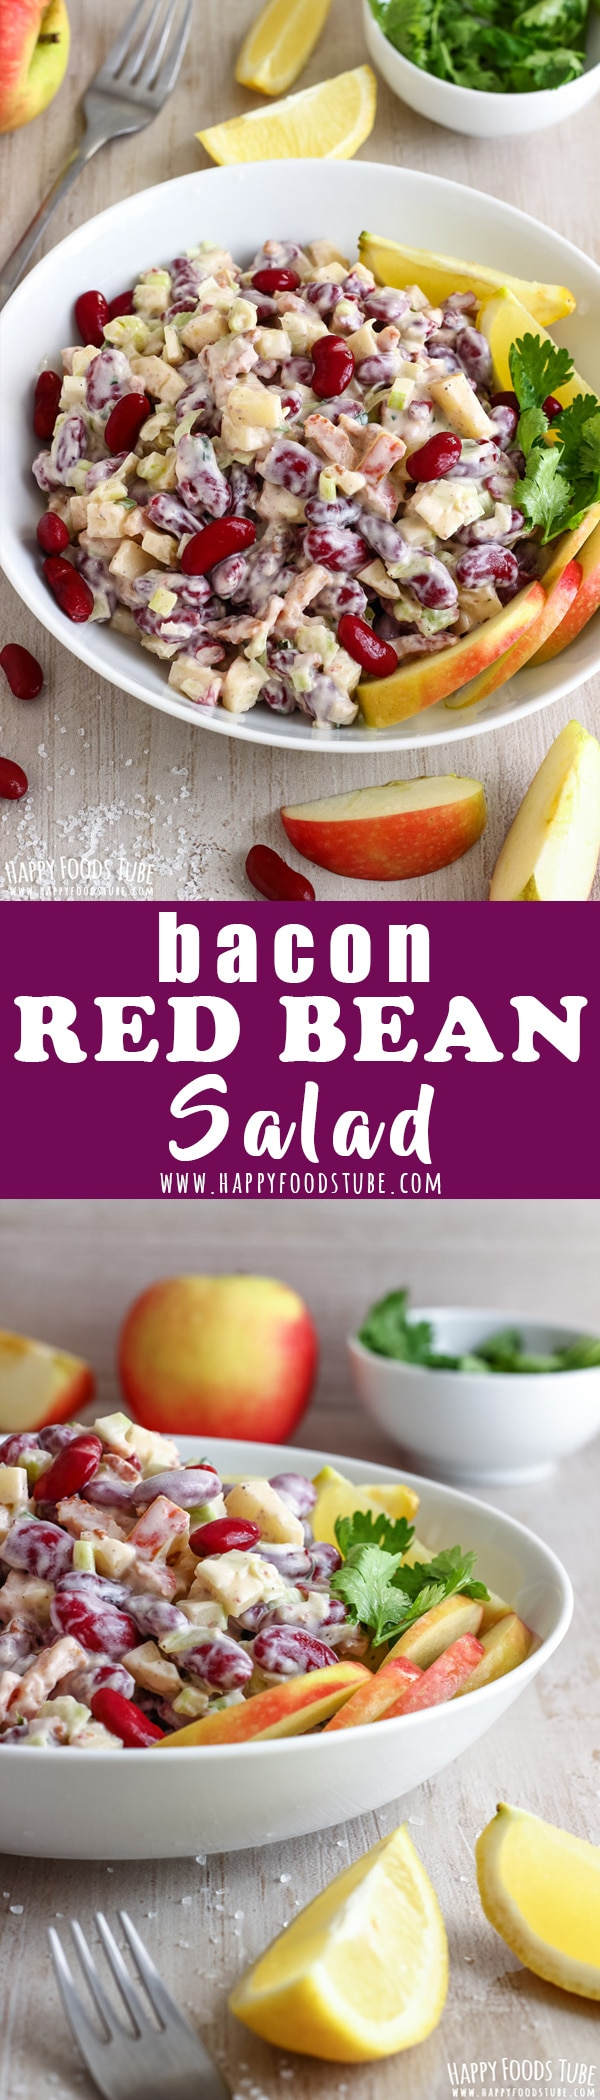 Bacon red bean salad is a simple, yet delicious side made with easy to get ingredients. It's quick to make and perfect for picnics or entertaining at home. Cold red bean salad recipe